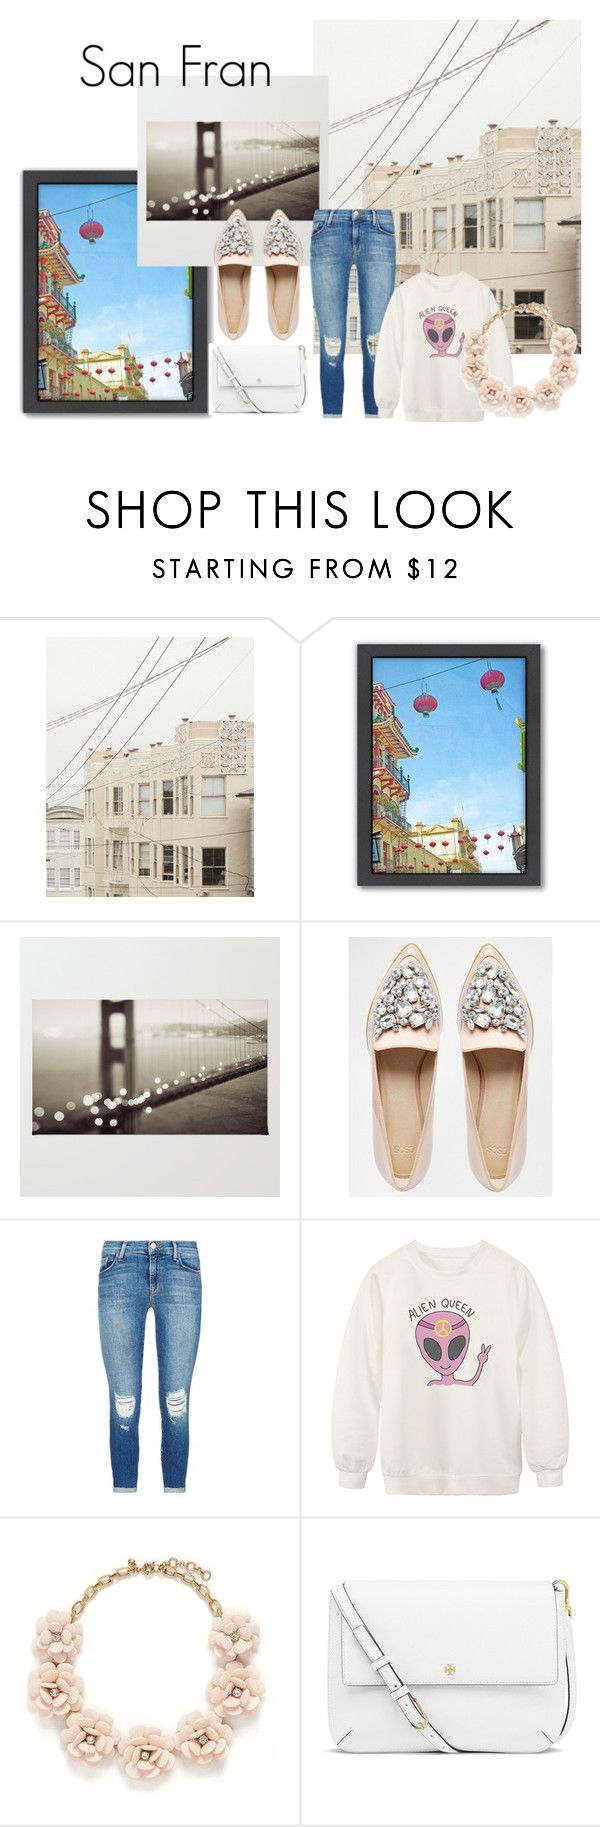 #sf by slounis on Polyvore featuring moda, Chicnova Fashion, J Brand, ASOS, Tory Burch, J.Crew, Americanflat, women's clothing, women's fashion and women